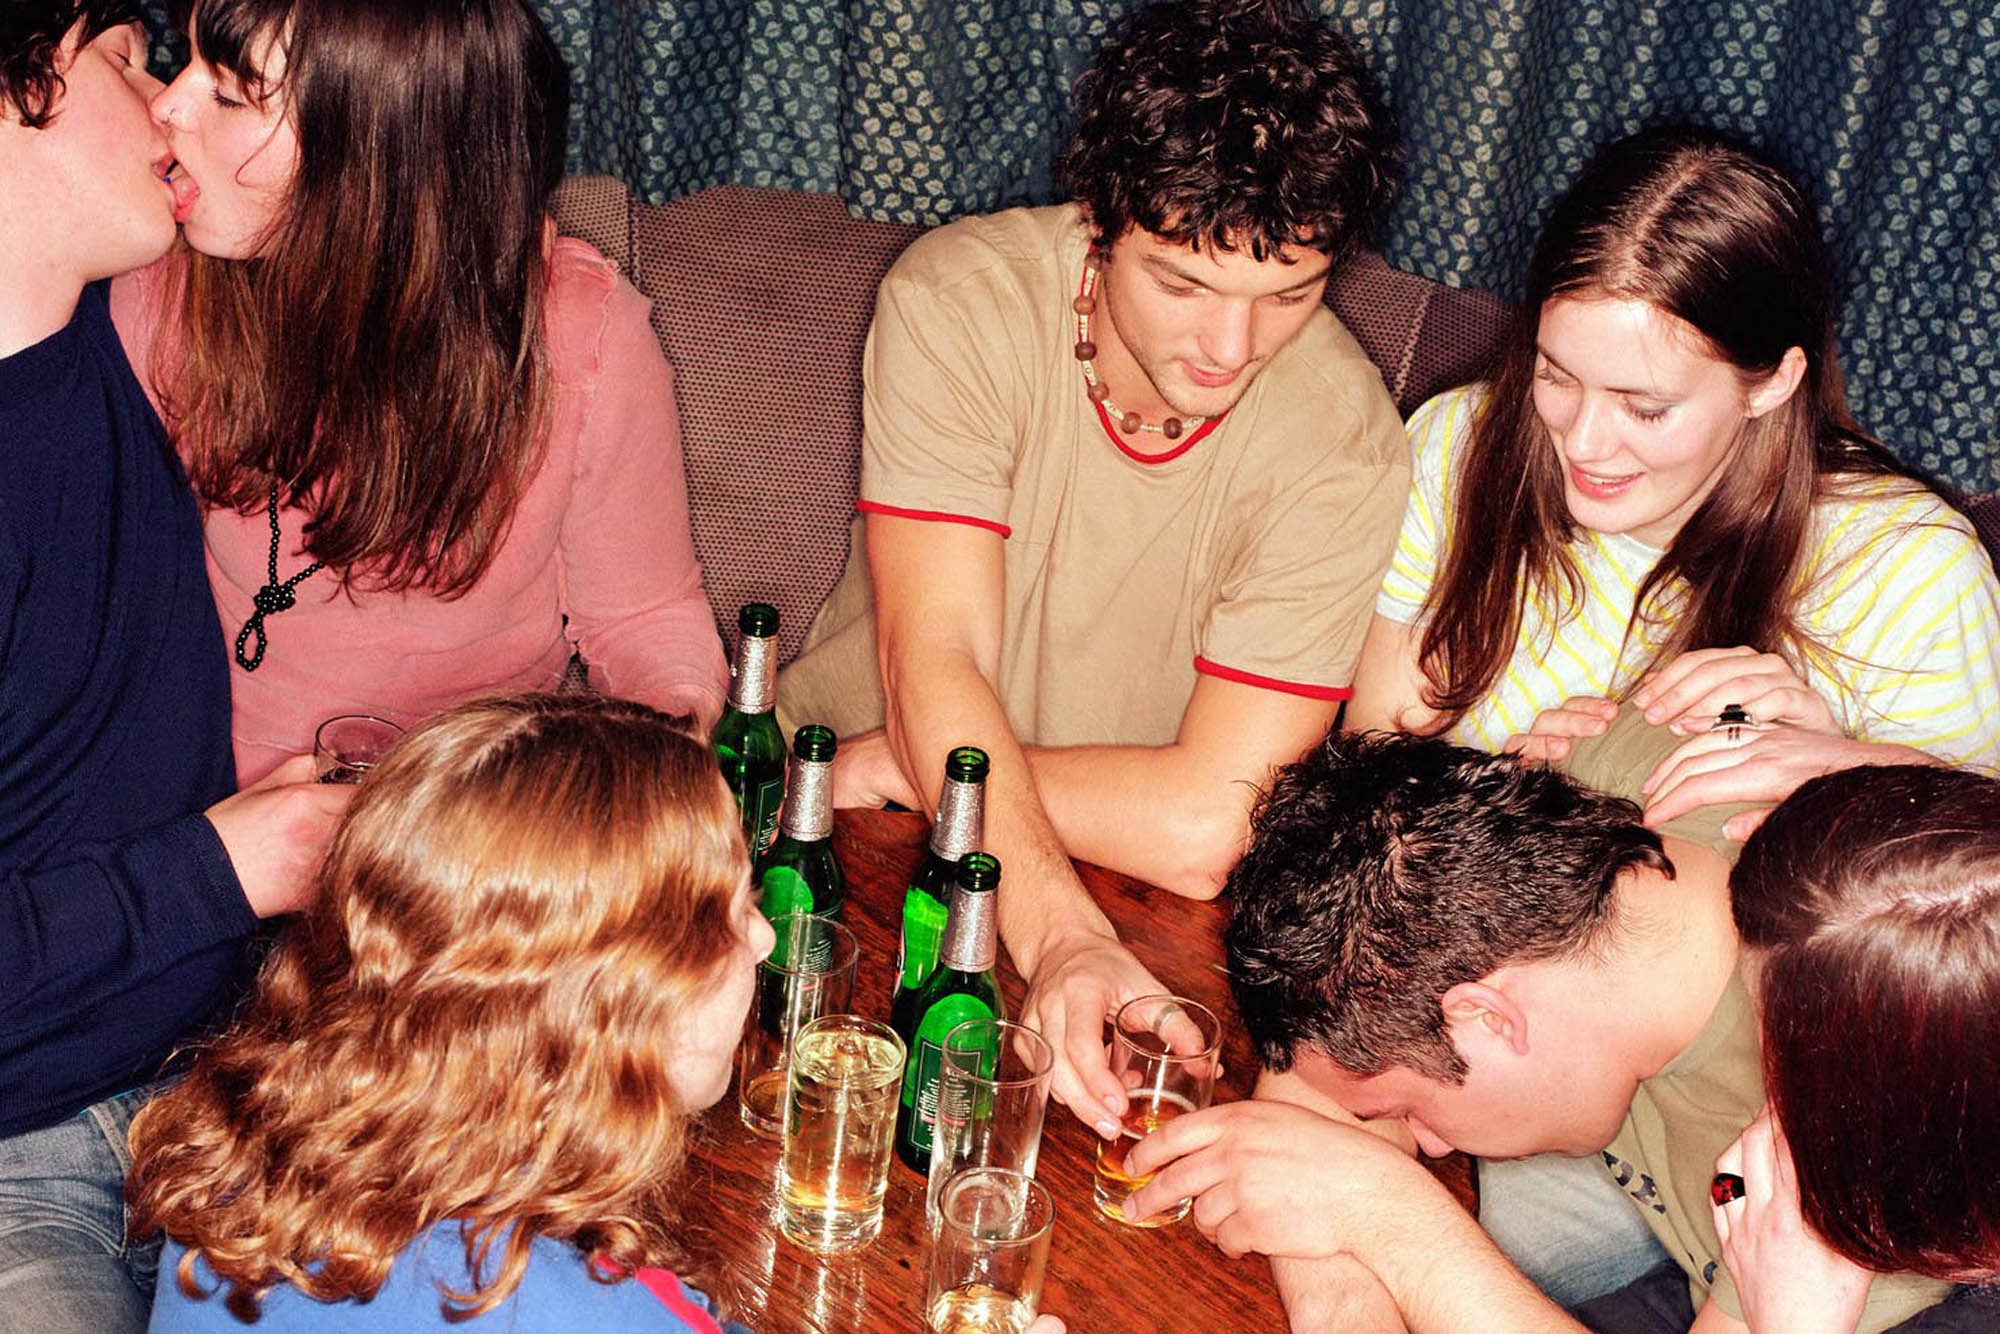 an analysis of the dangers of binge drinking in college campuses Binge drinking a decade later: campus judicial officers react to college campuses binge drinking refers binge drinking 26 22 summary of dangers.